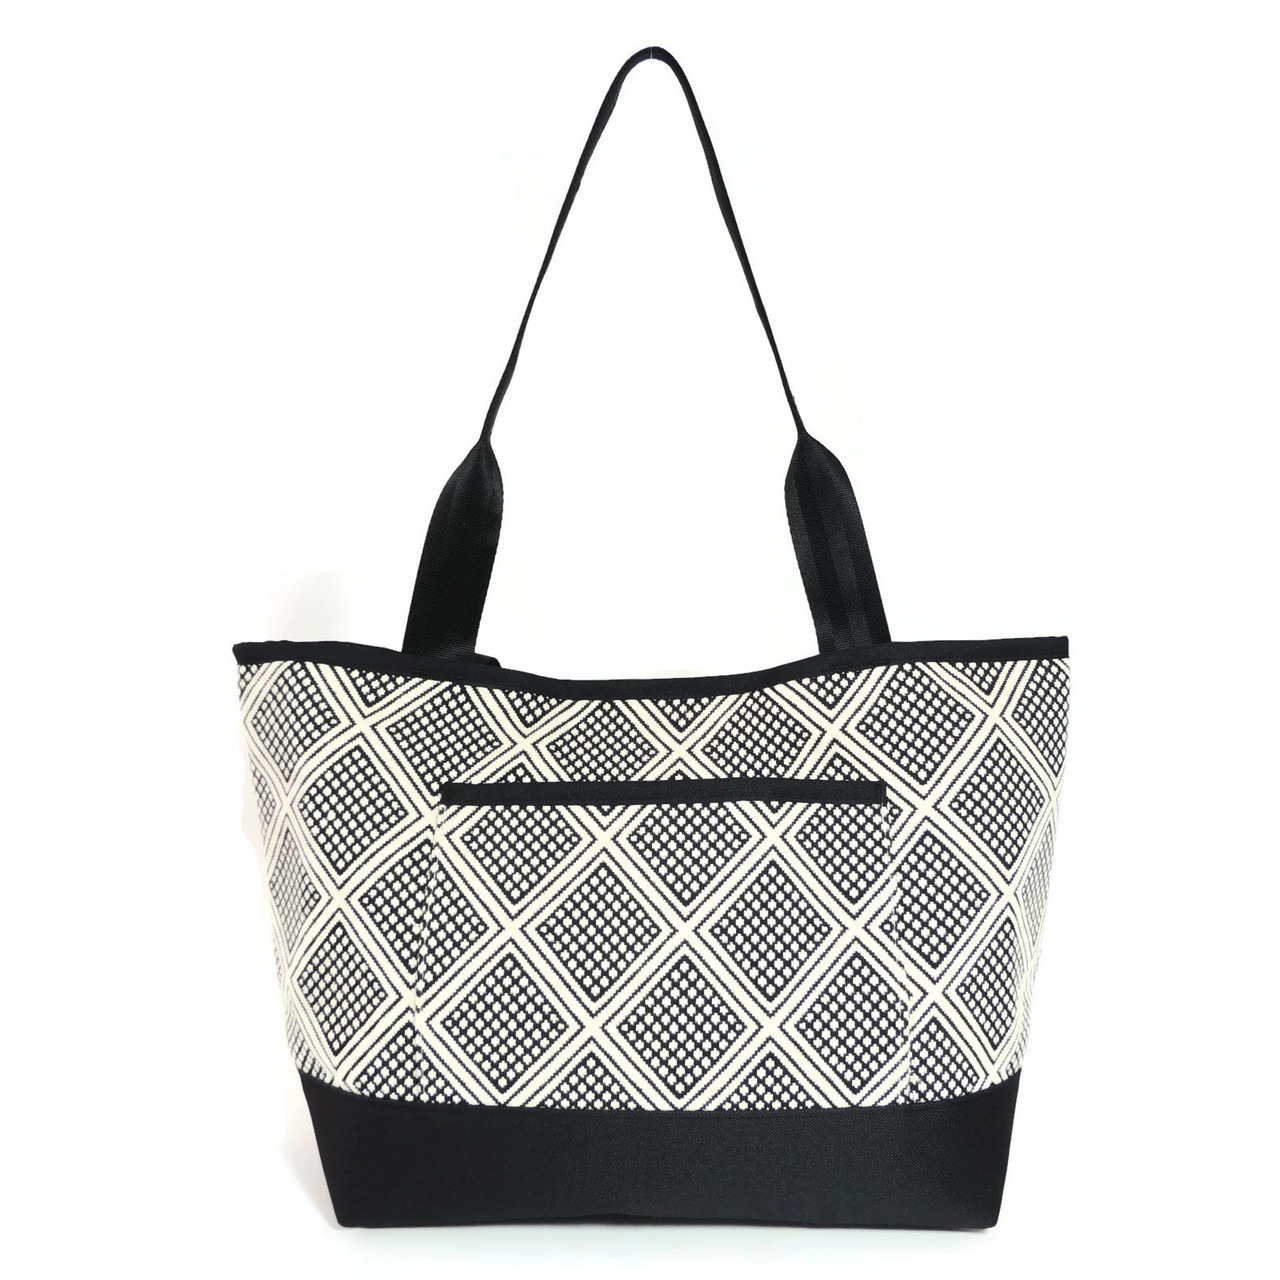 Baby Tote Bag in Astor